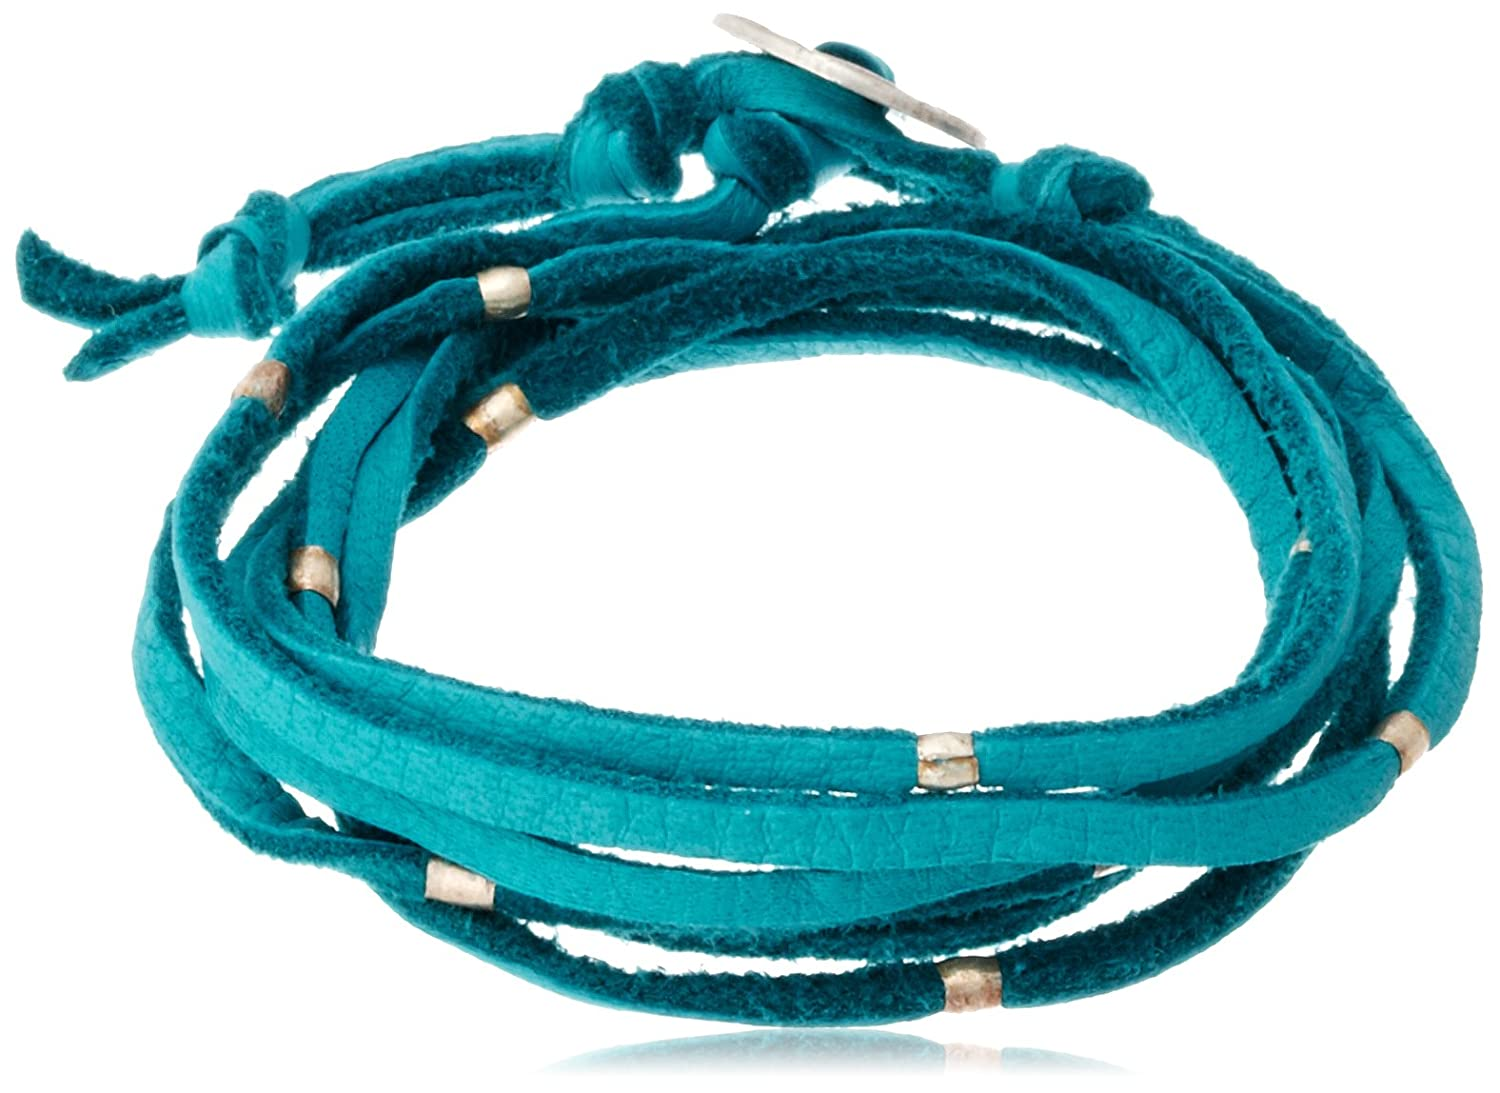 Amazon.co.jp: [ブロンウェン] bronwen SuedeLeather Wrap 1010TURQUOISE: ジュエリー通販